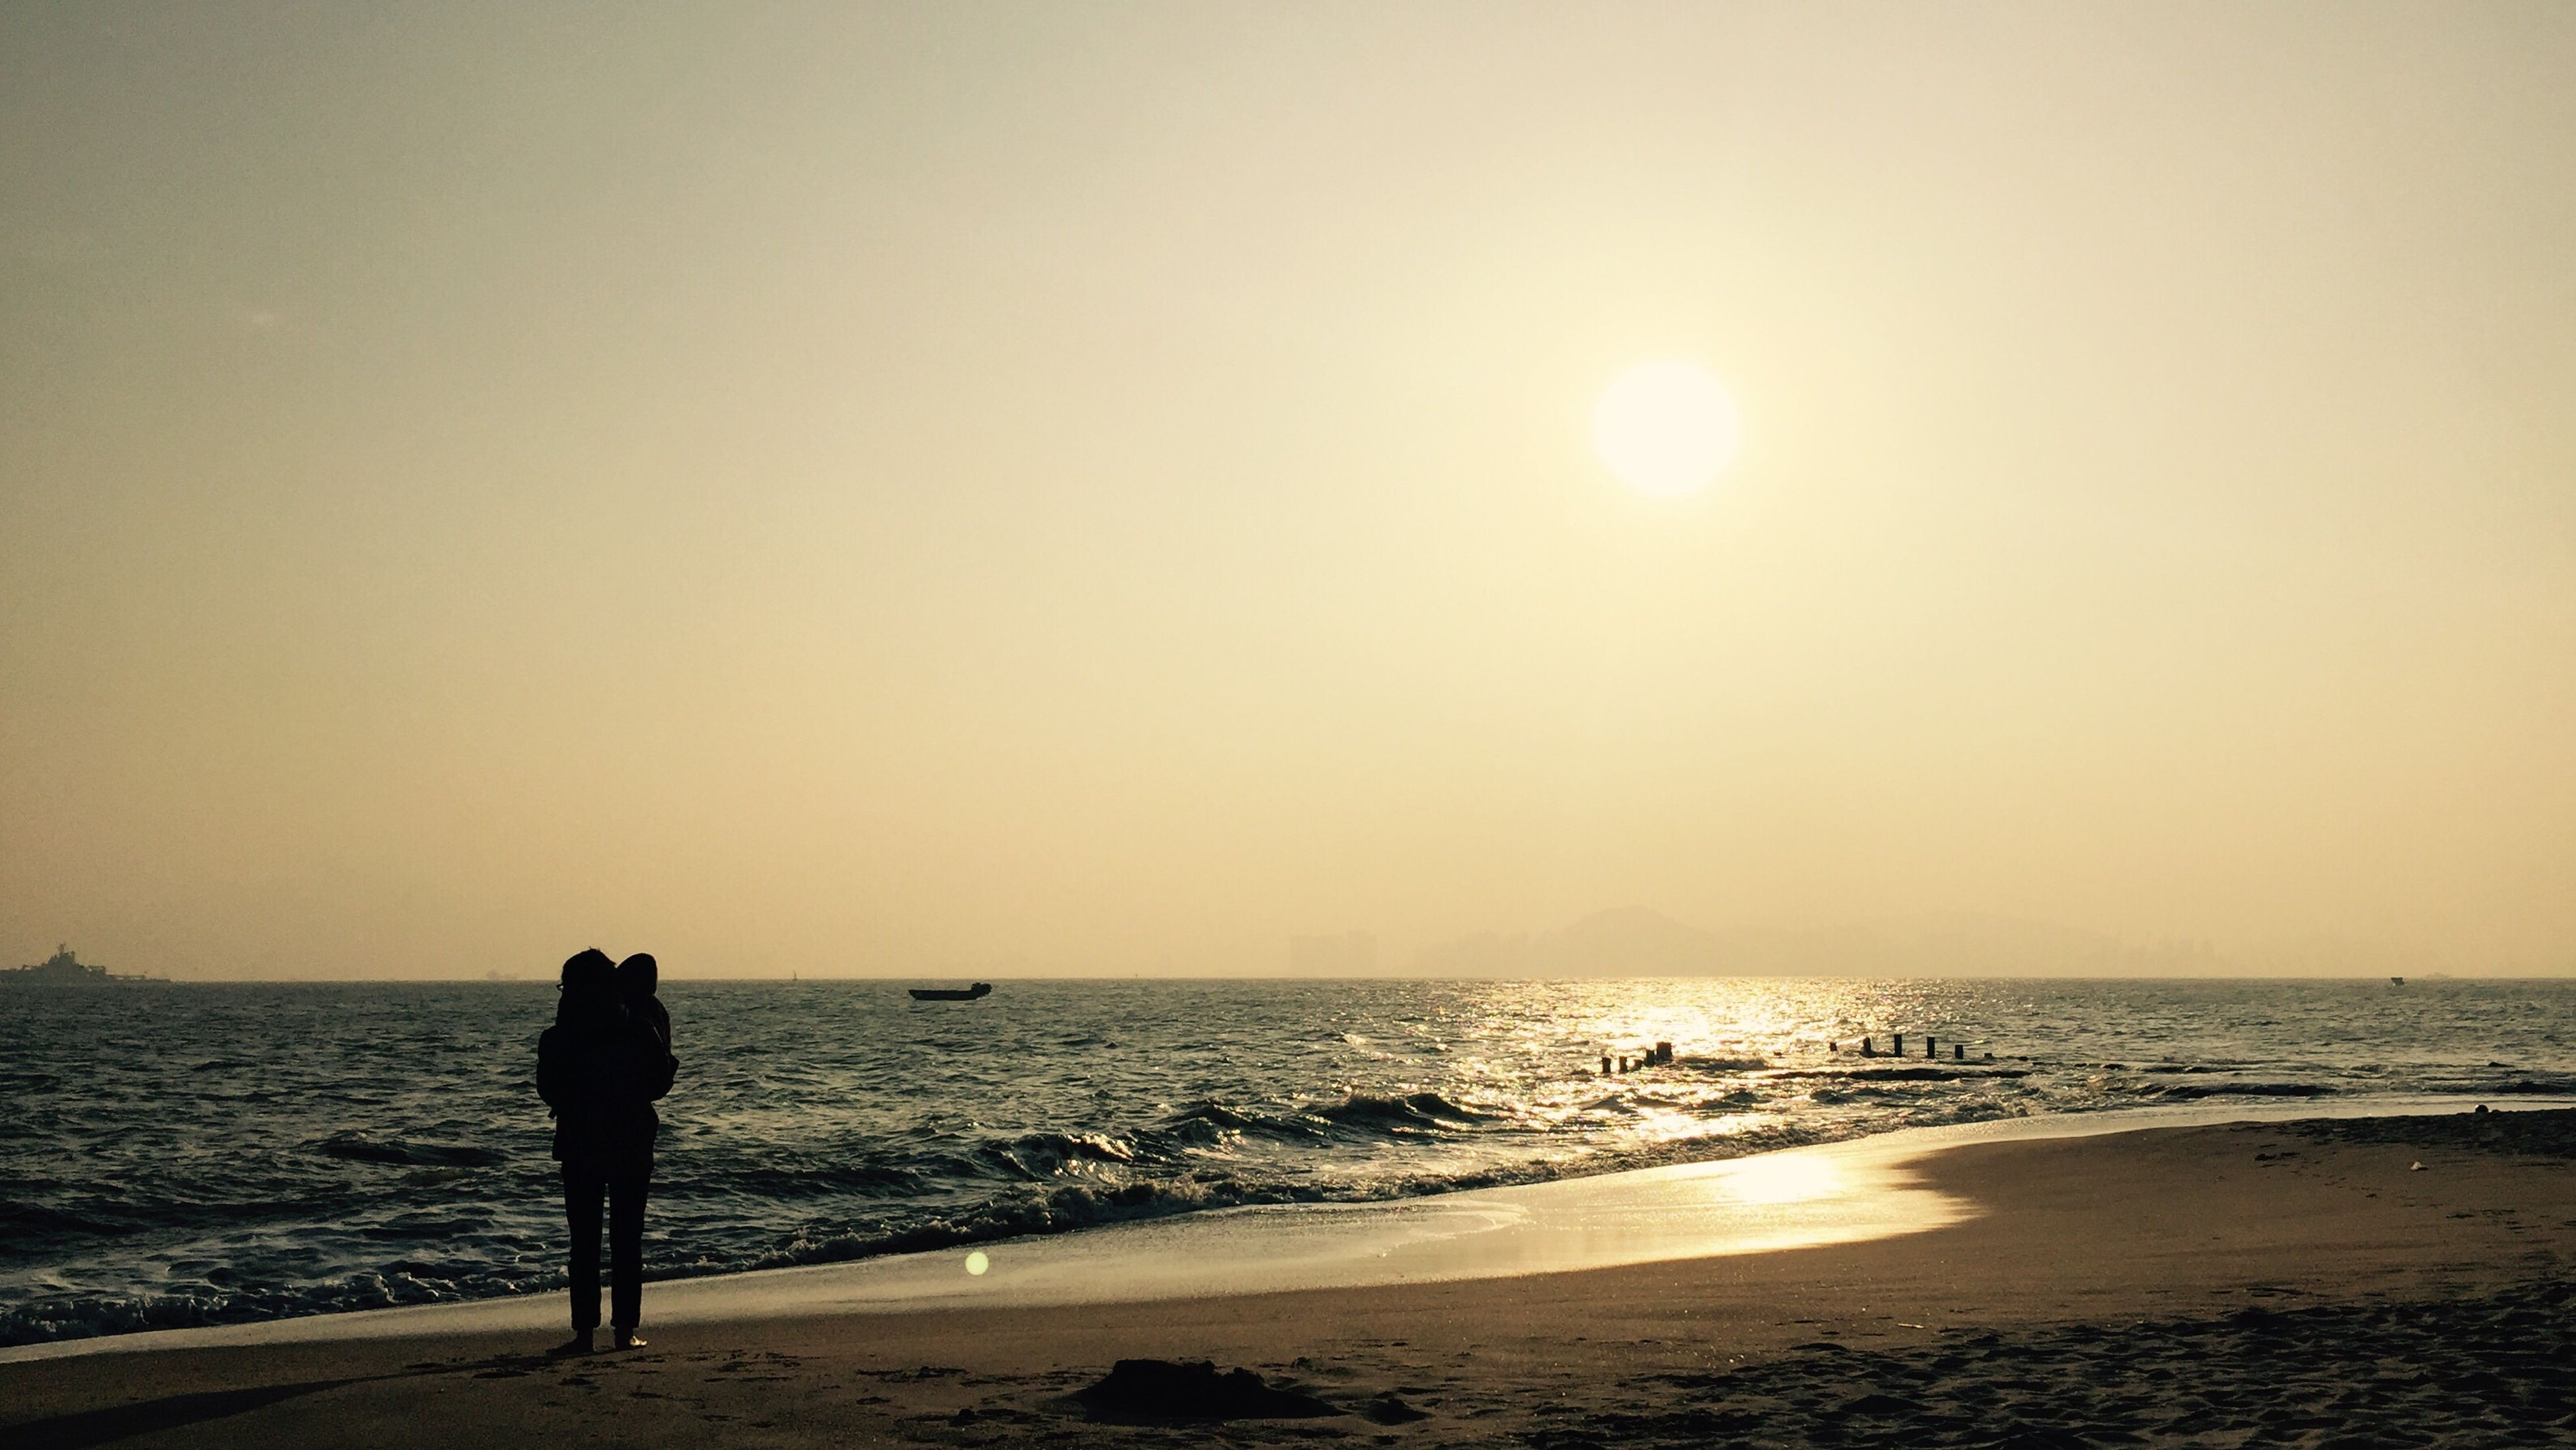 sea, horizon over water, water, sun, beach, sunset, silhouette, scenics, tranquil scene, beauty in nature, shore, tranquility, clear sky, standing, idyllic, nature, copy space, leisure activity